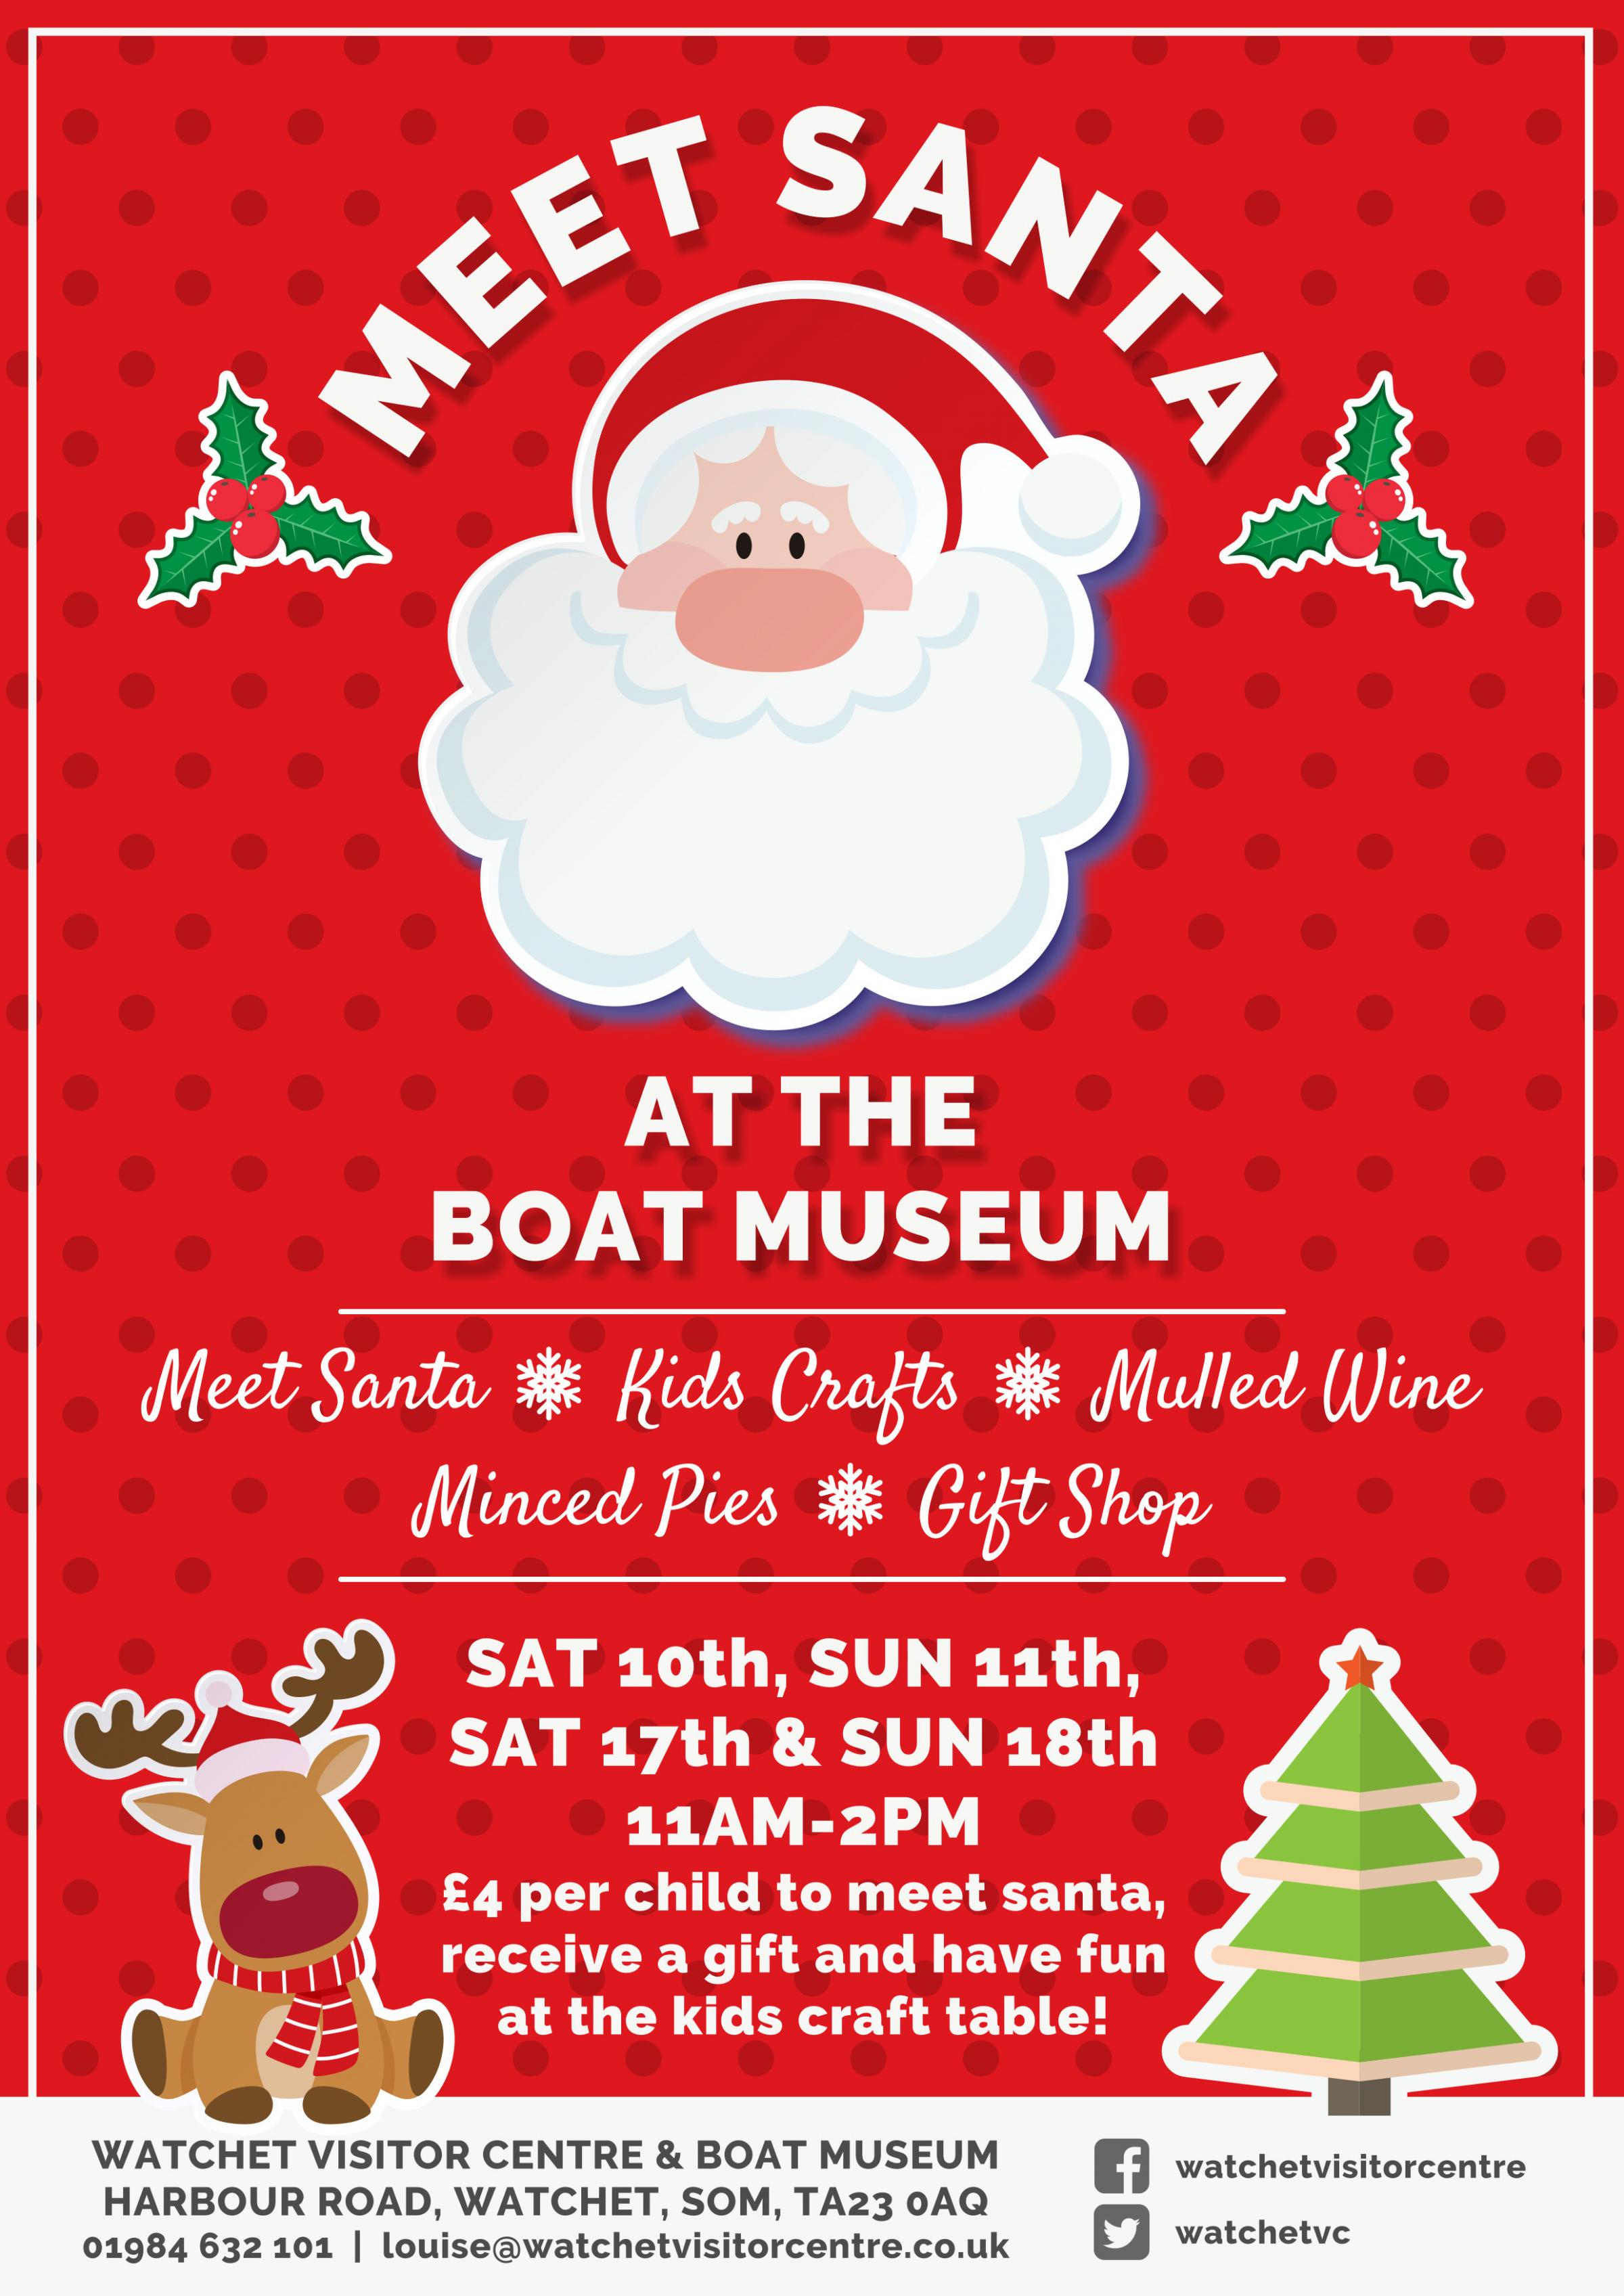 Meet Santa in the Boat Museum